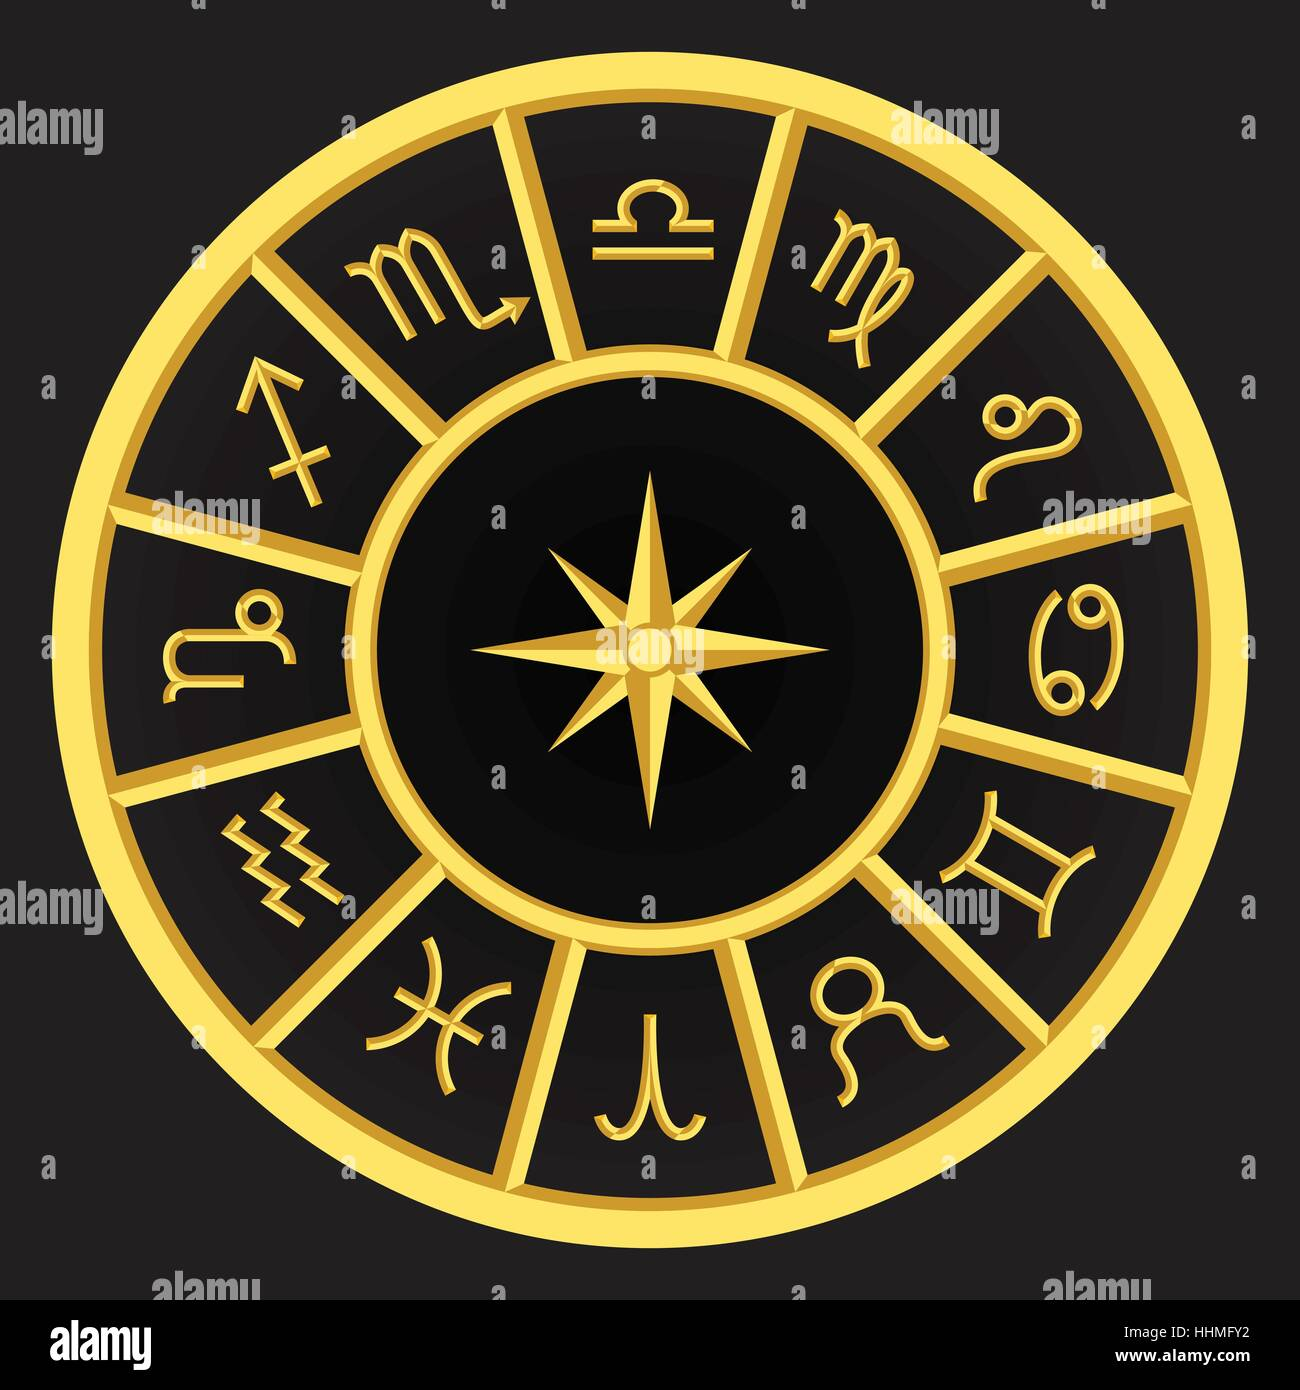 Golden zodiac symbols on black background set of zodiac signs 12 golden zodiac symbols on golden circle set of flat zodiac signs 12 zodiac buycottarizona Image collections